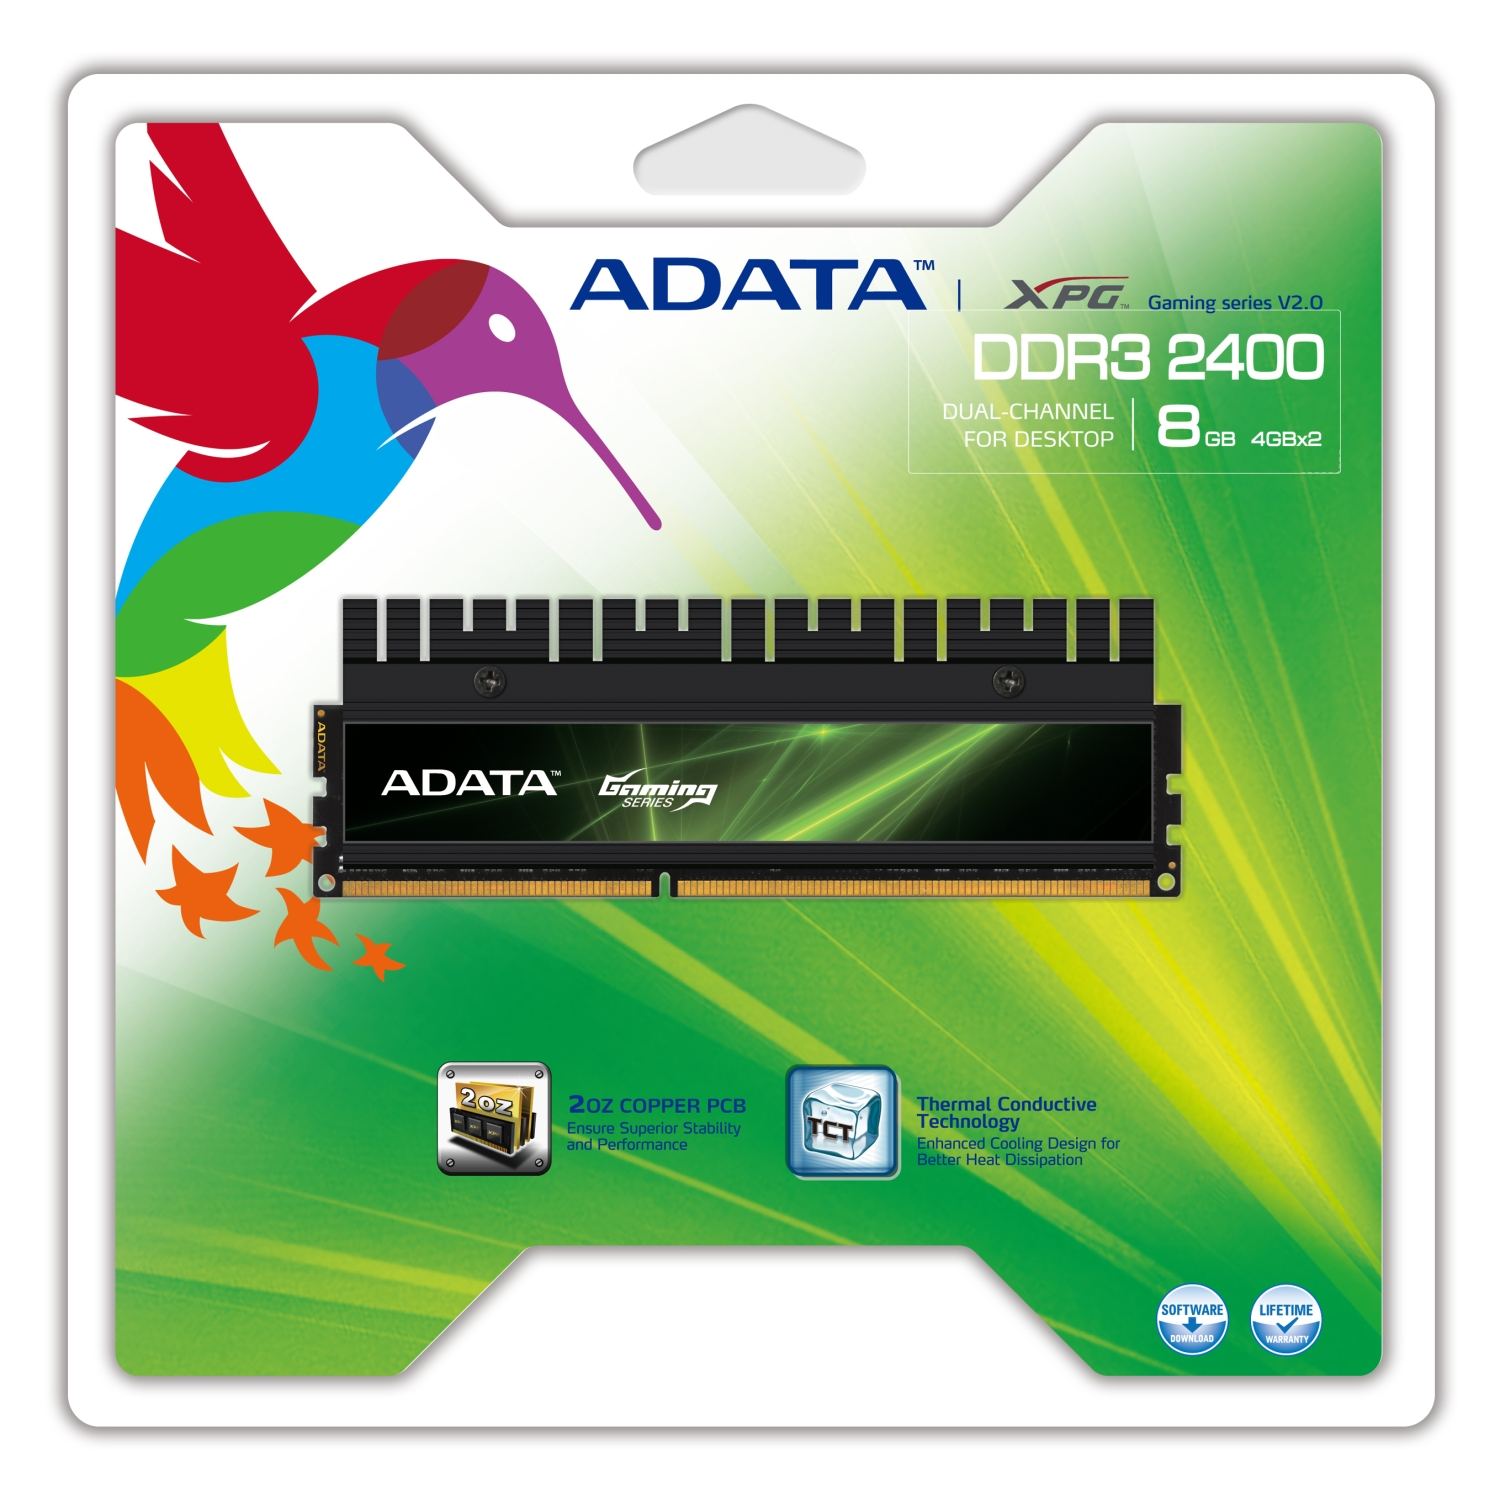 ADATA XPG Gaming DDR3 2400 Dual 8GB package HiRes 01